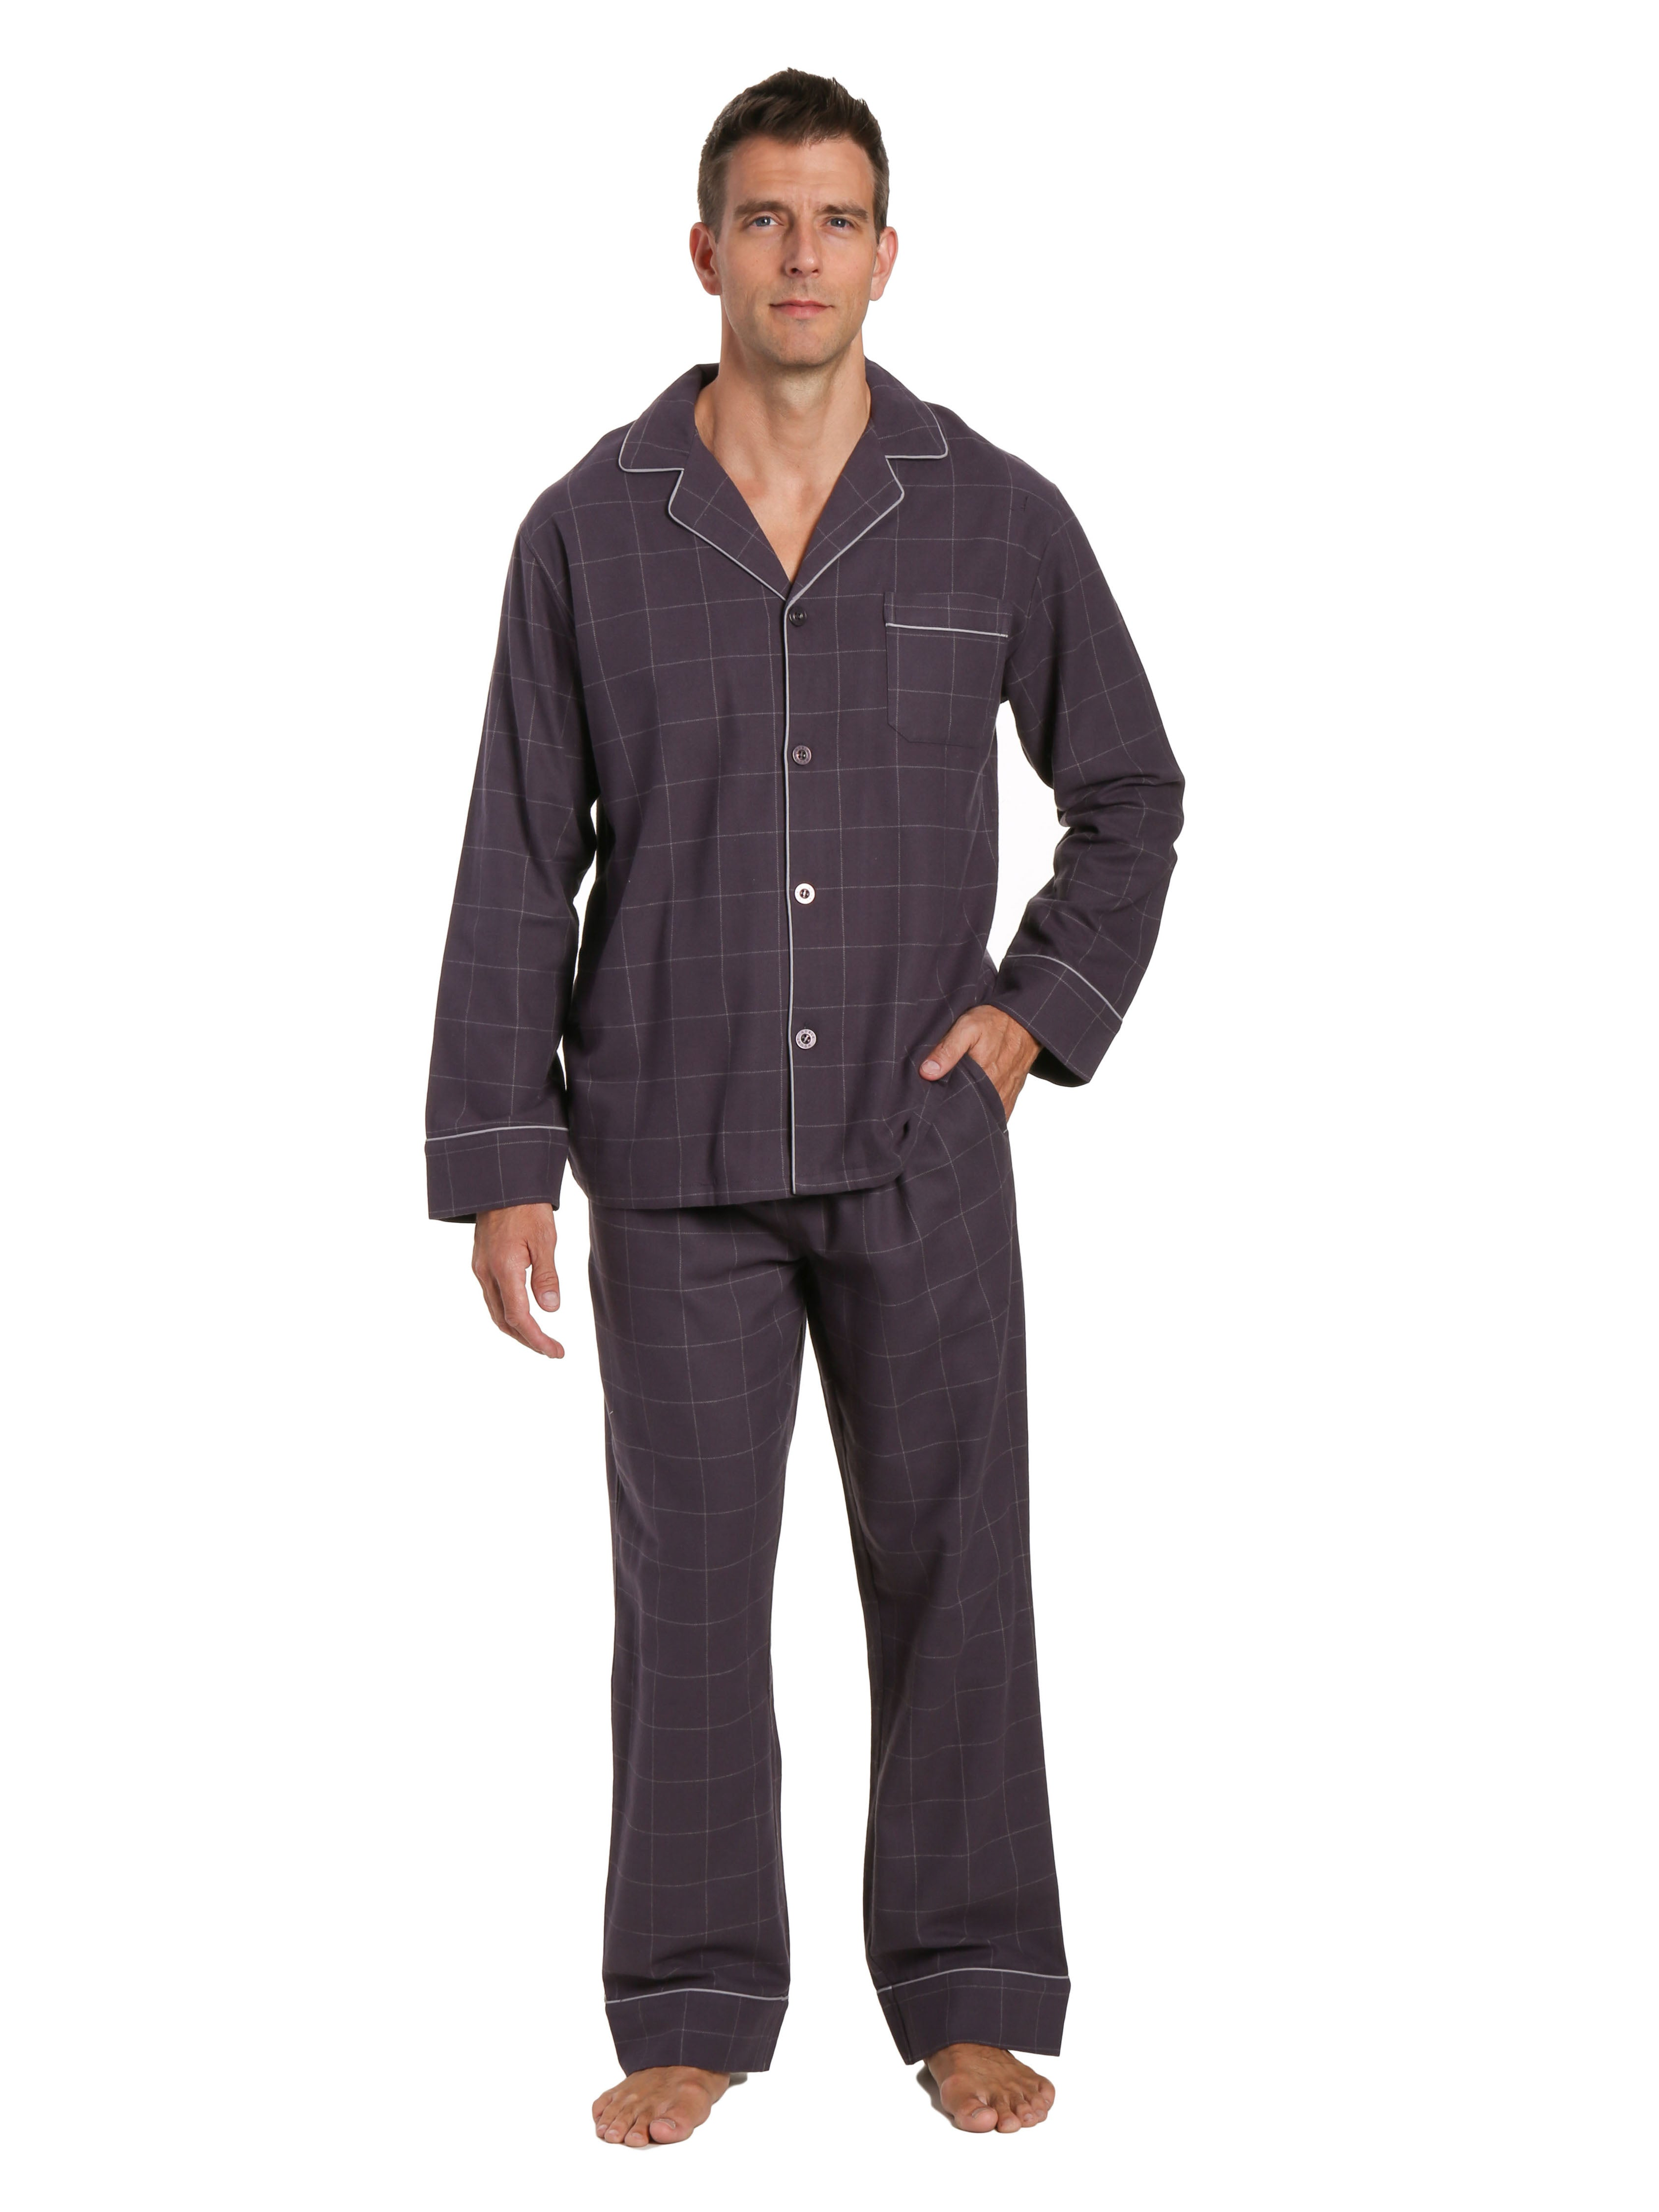 Mens 100% Cotton Flannel Pajama Set - Windowpane Checks - Iron